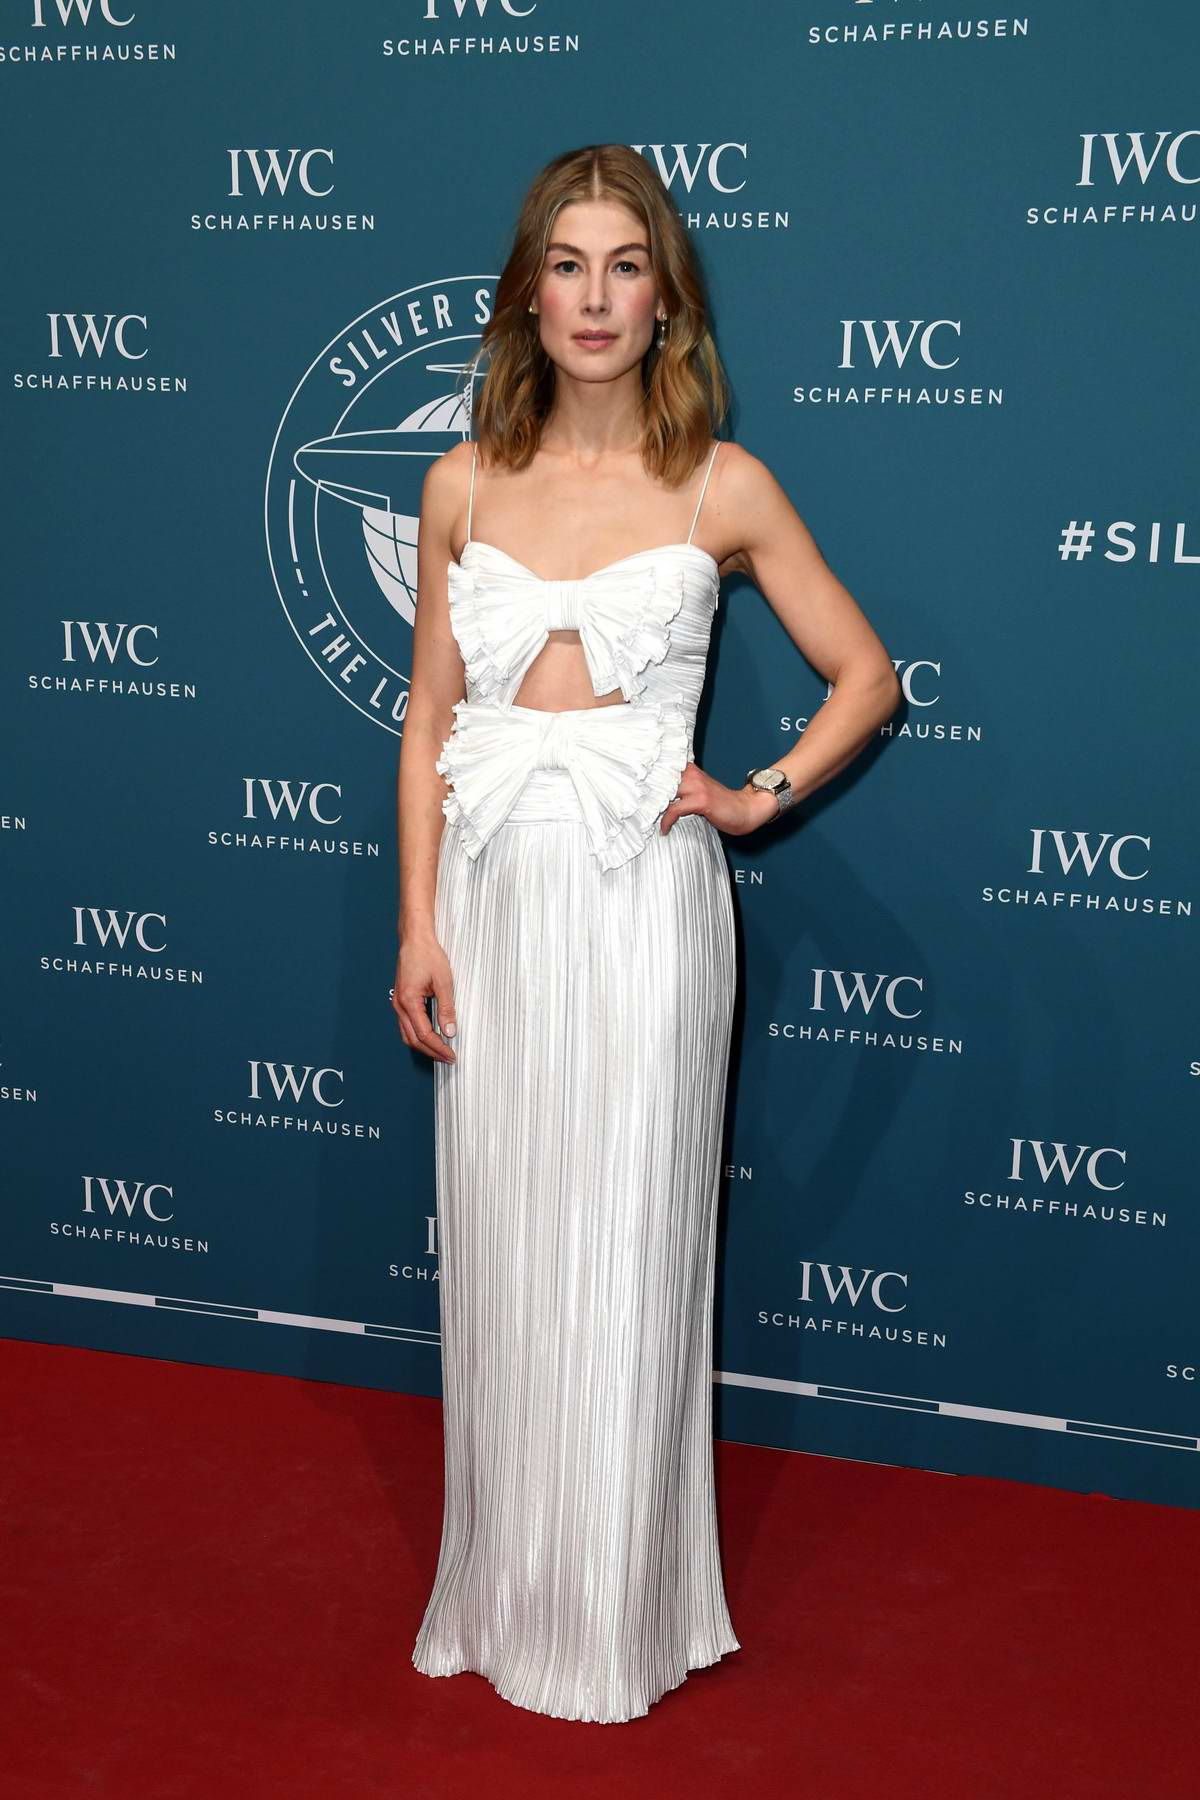 Rosamund Pike attends IWC Schaffhausen at SIHH 2019 in Geneva, Switzerland